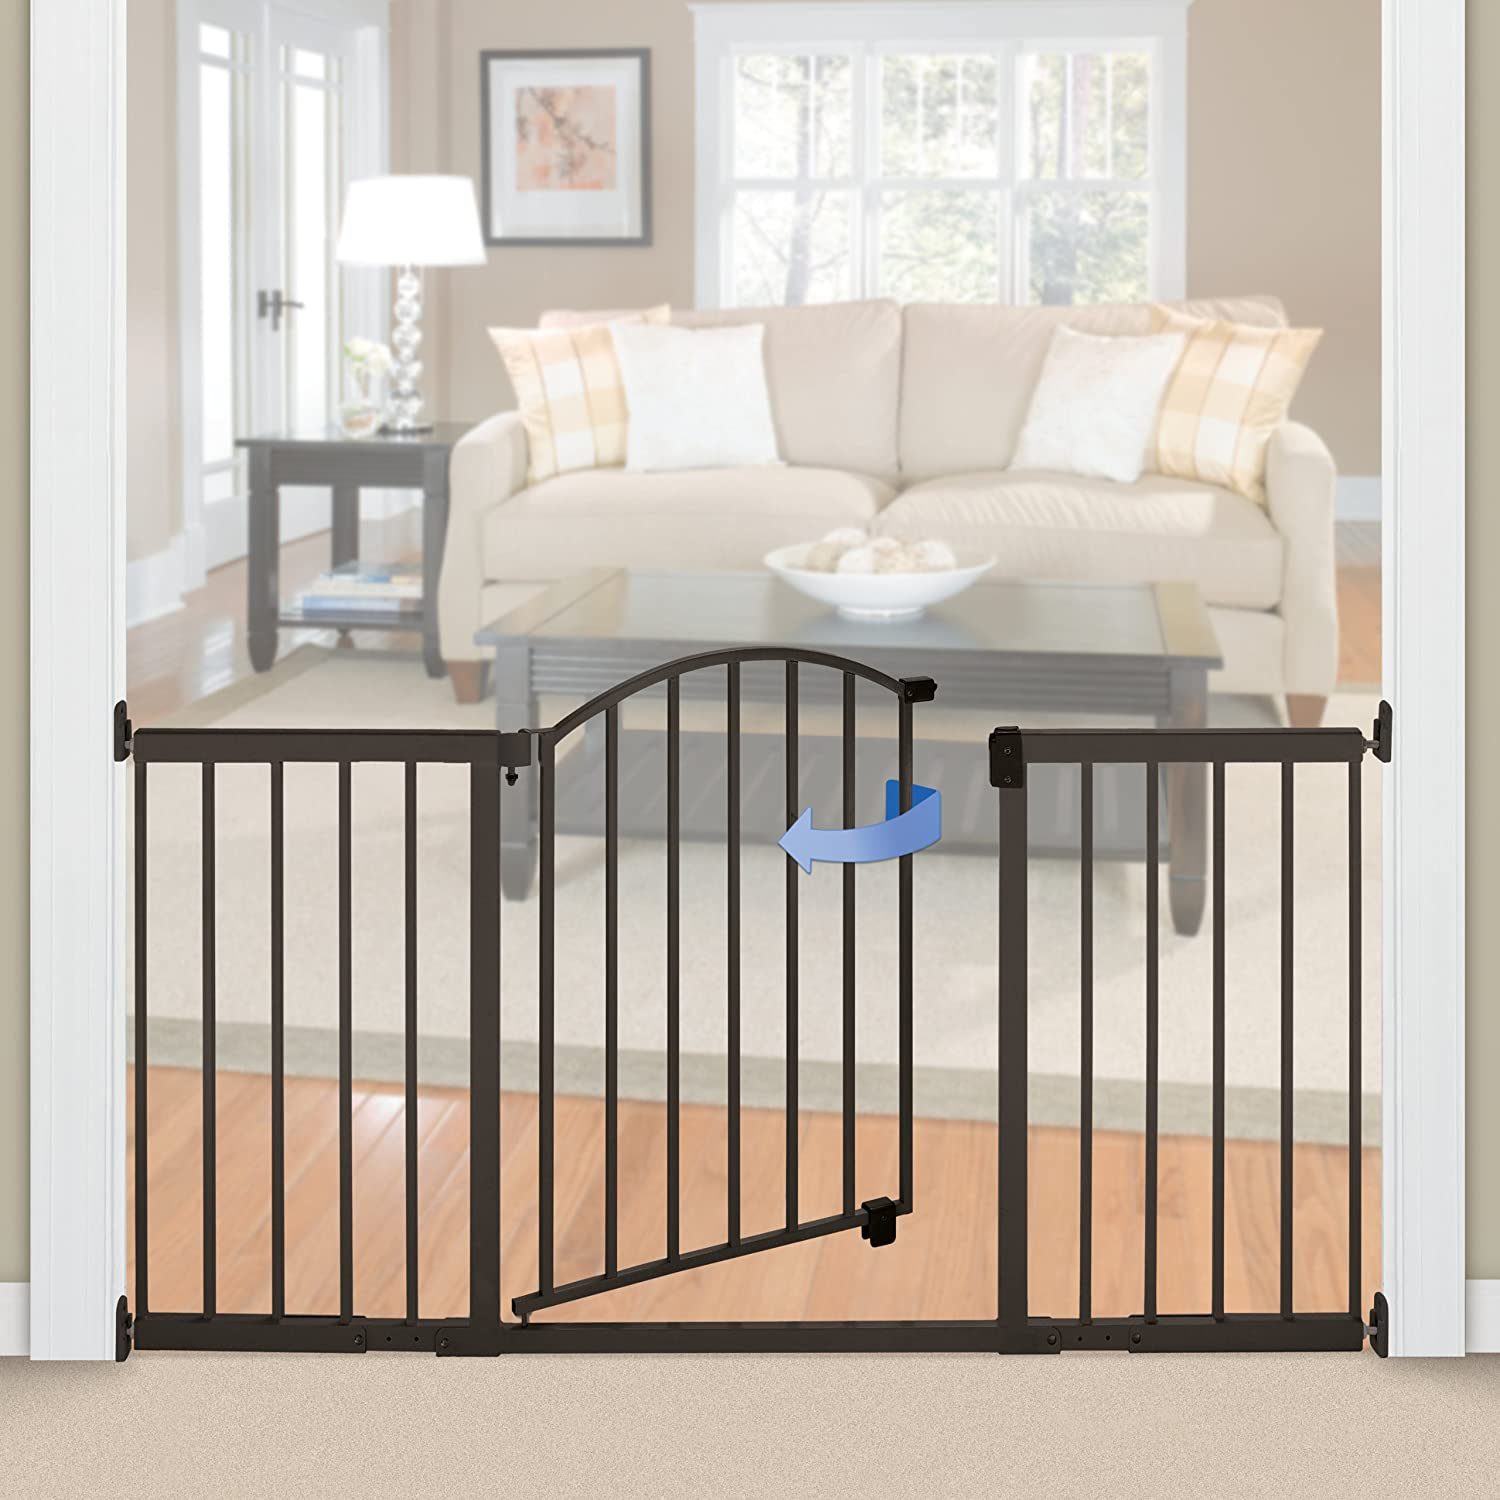 child gates baby fence